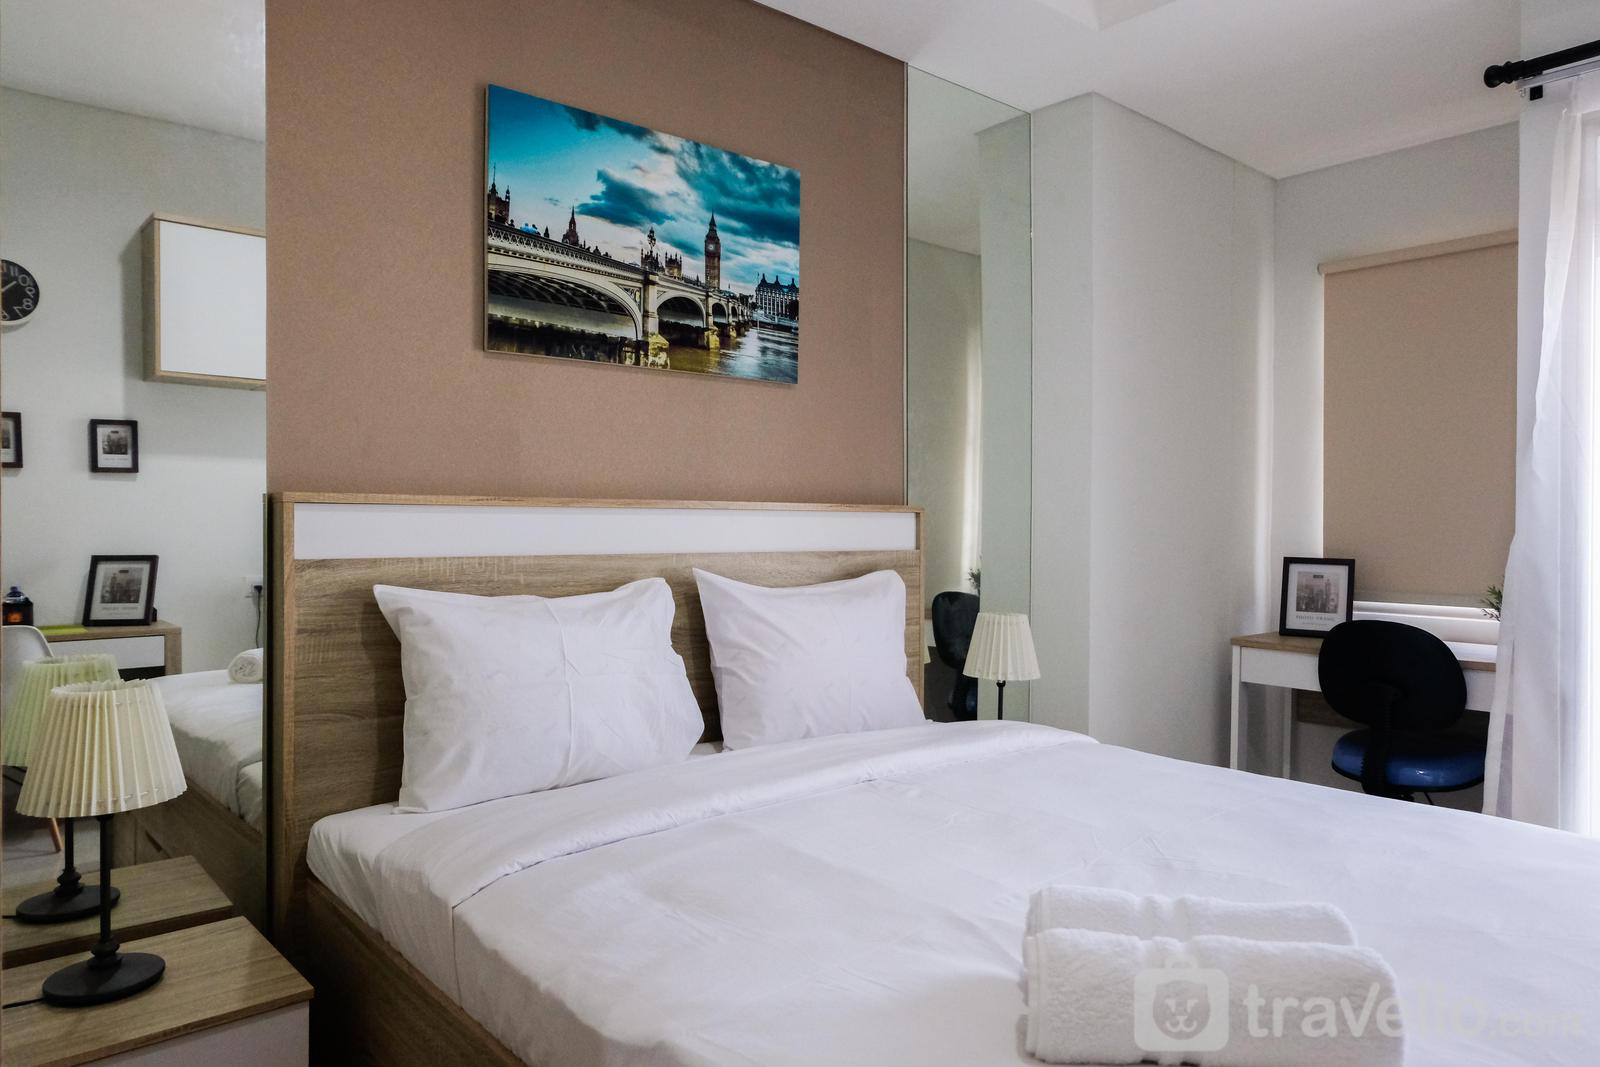 Springwood Residence Tangerang - New Studio Apartment at Springwood Residence By Travelio